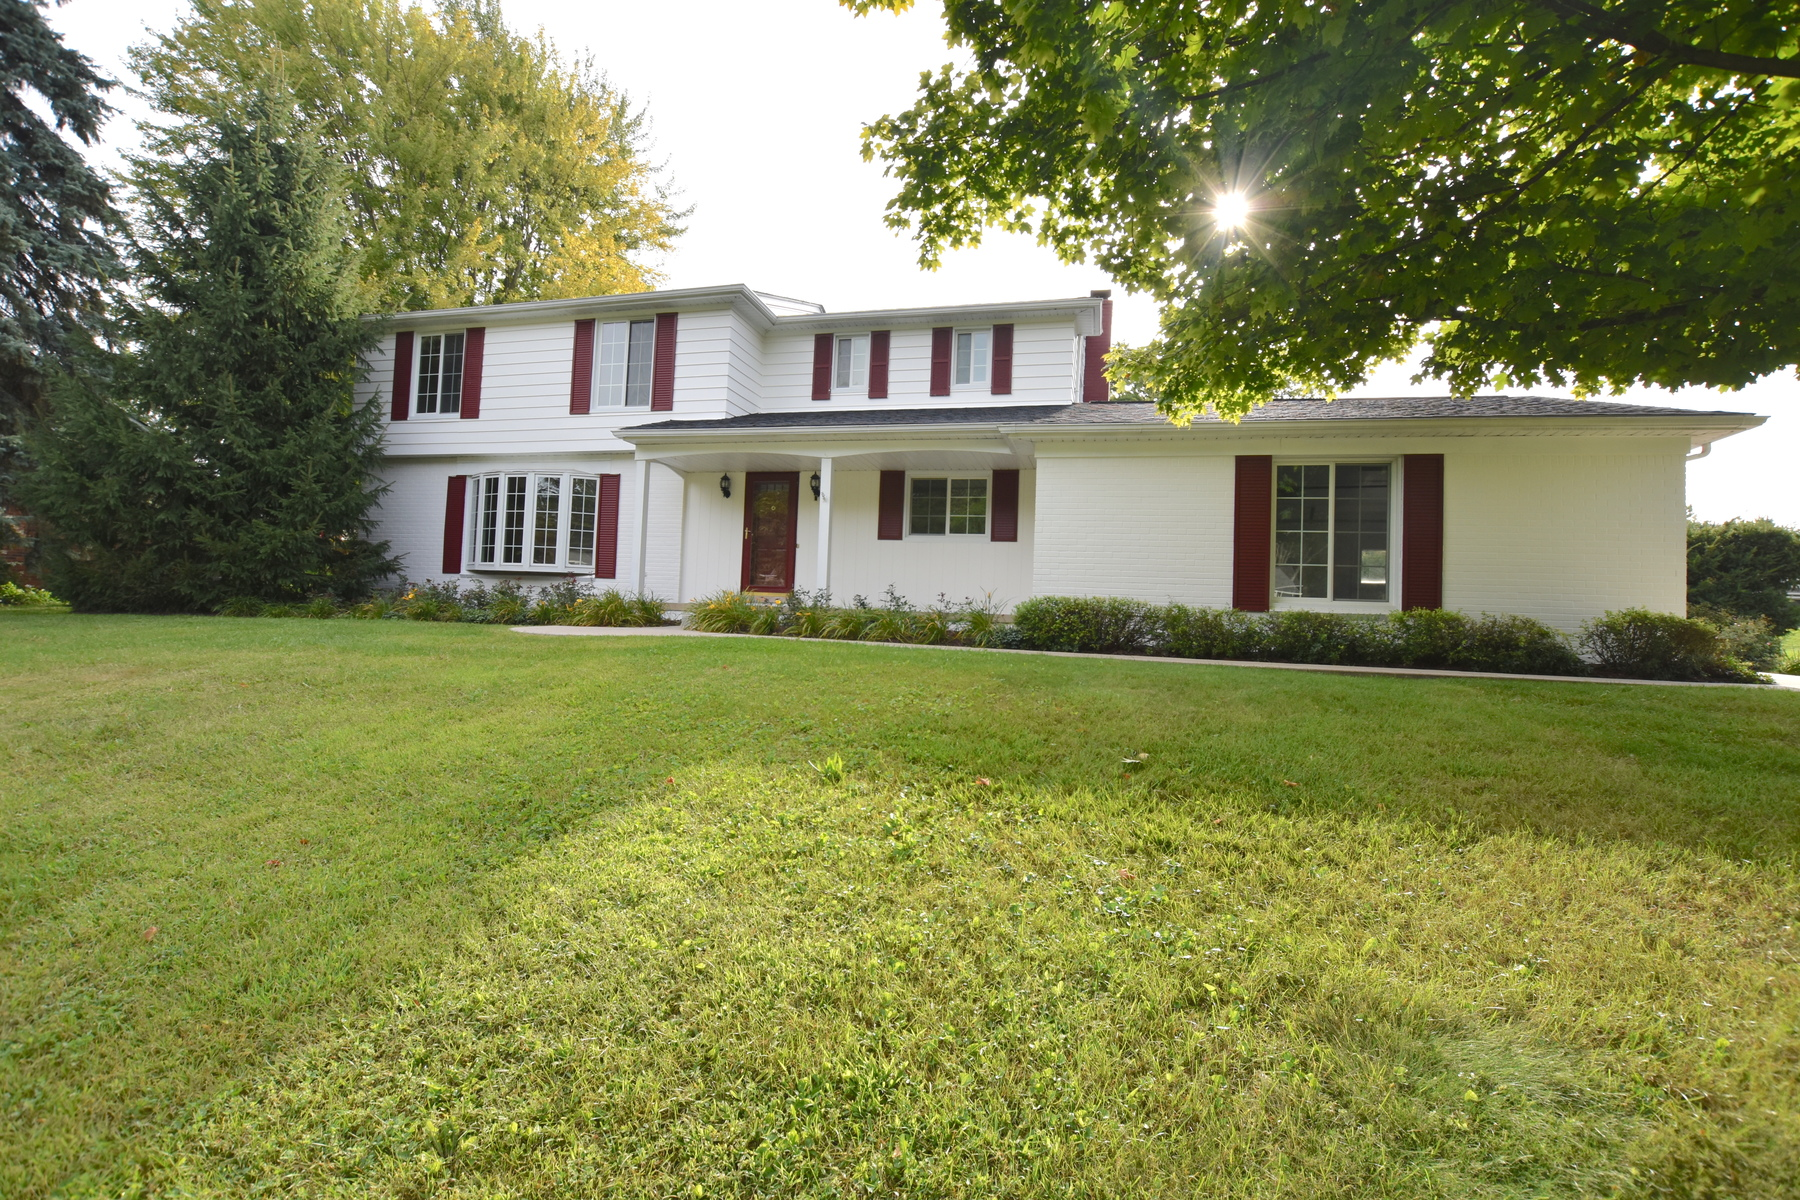 Single Family Homes for Sale at Bloomfield Township 2275 Park Ridge Drive Bloomfield Township, Michigan 48304 United States